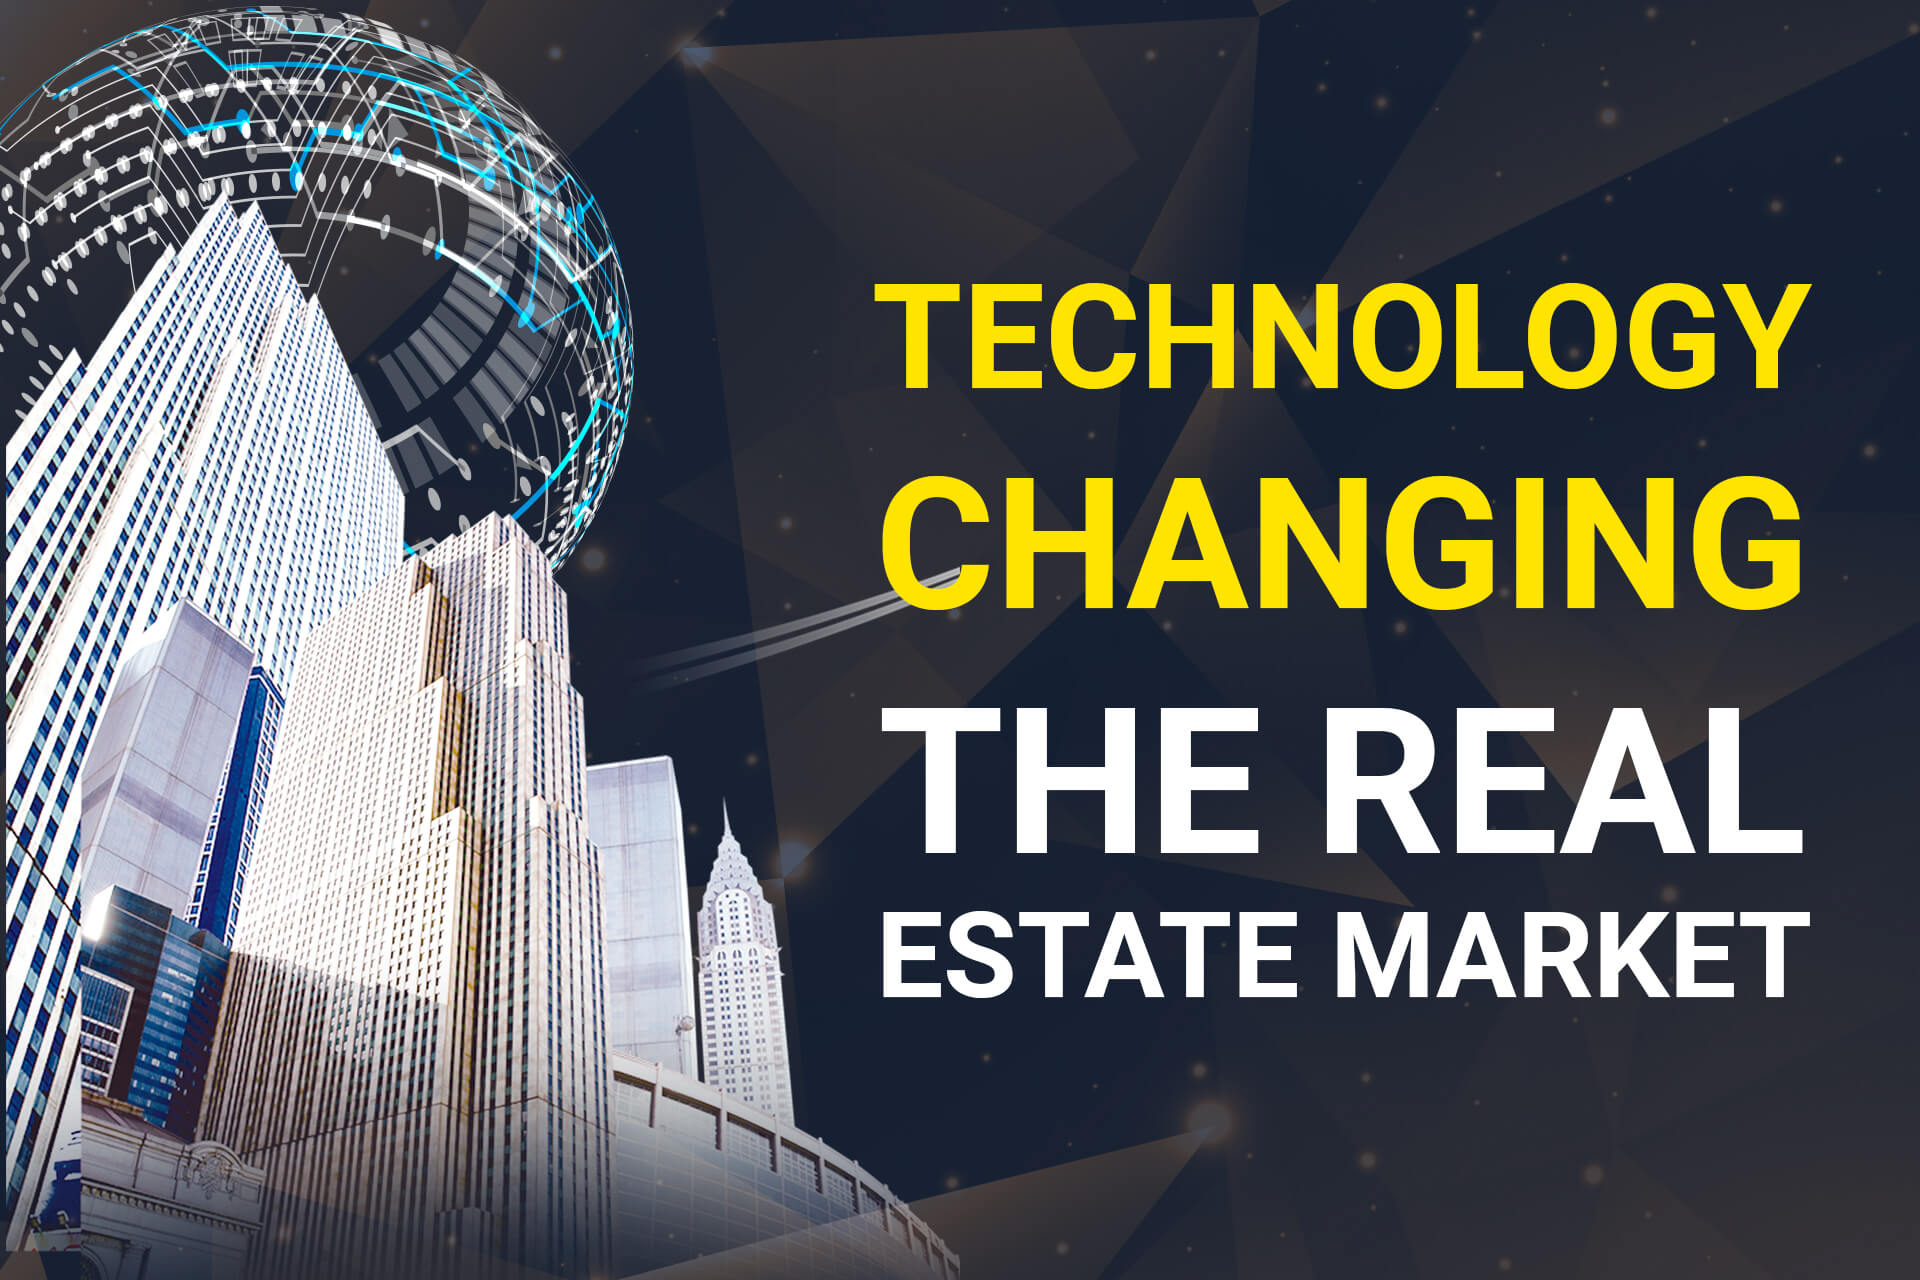 The-Real-Estate-Market